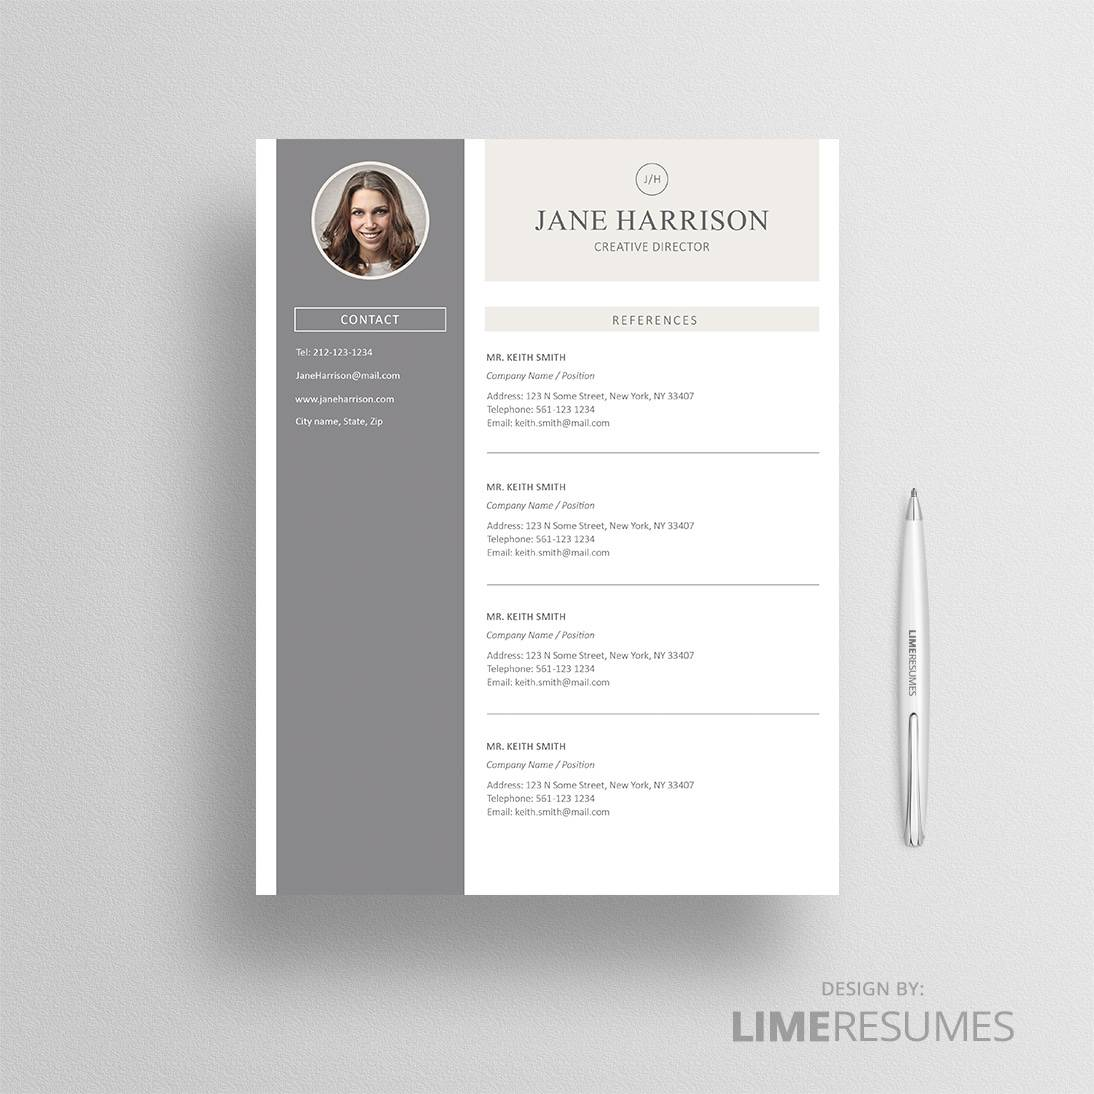 Resume With Photo Page Photo Resume Limeresumes